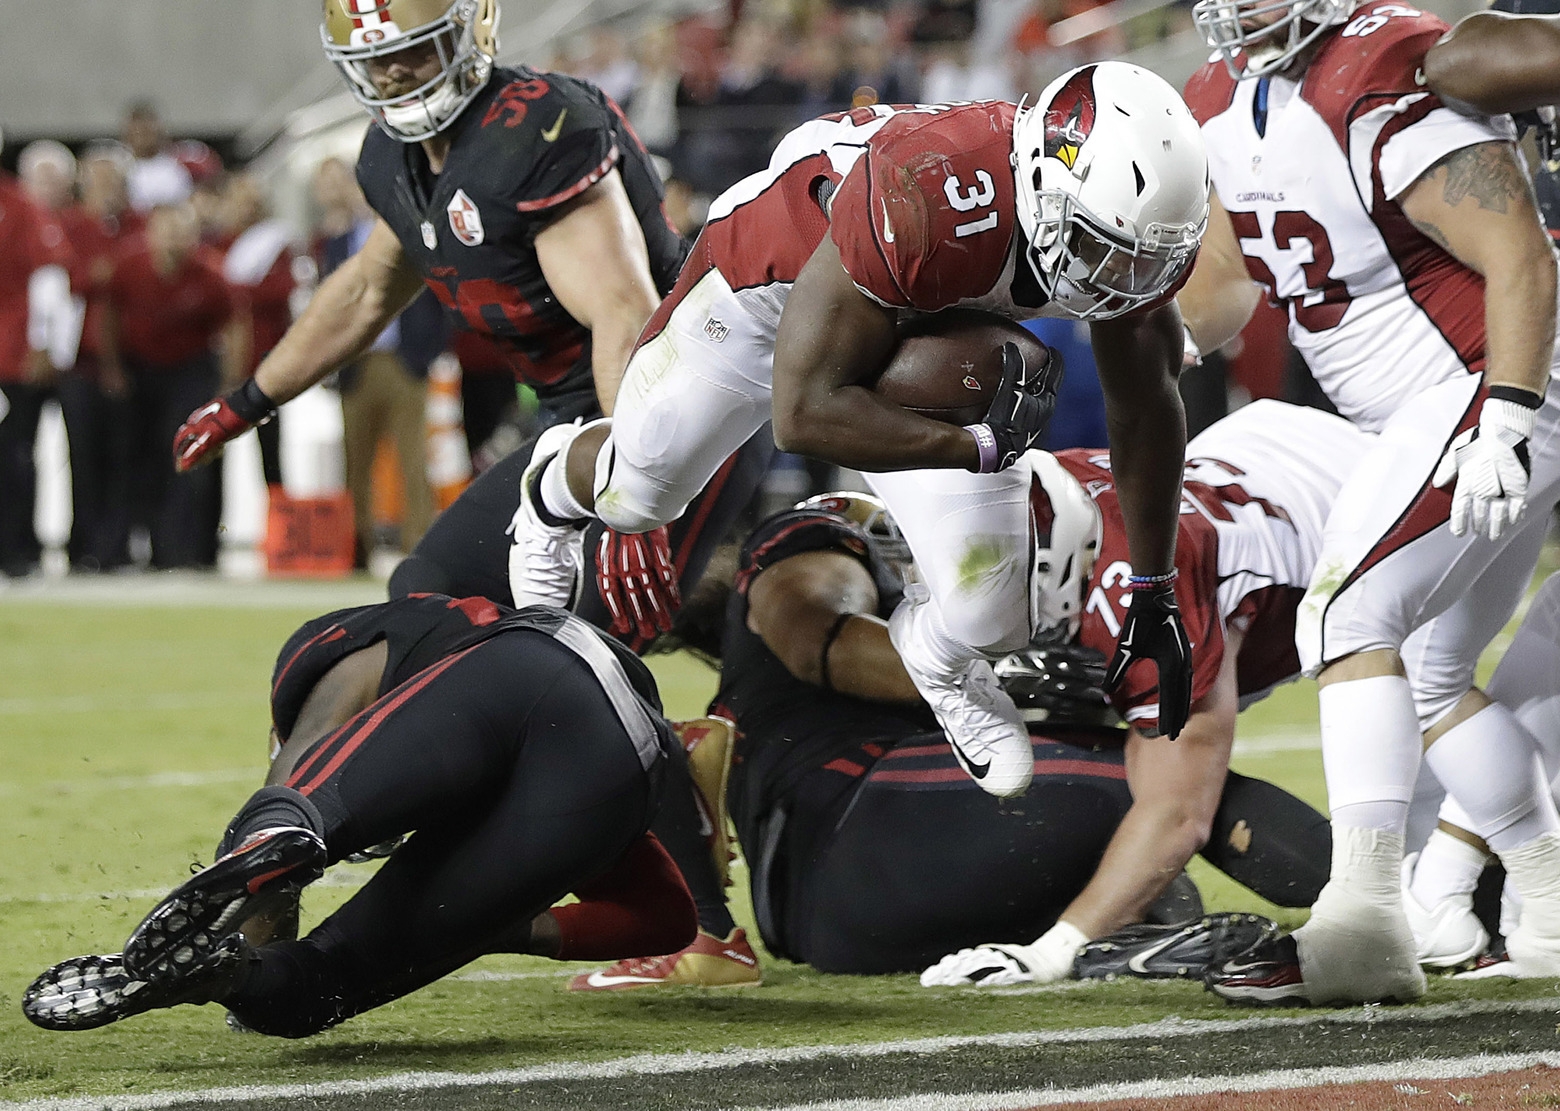 Seahawks opponent preview: Cardinals appear to be finding strid…